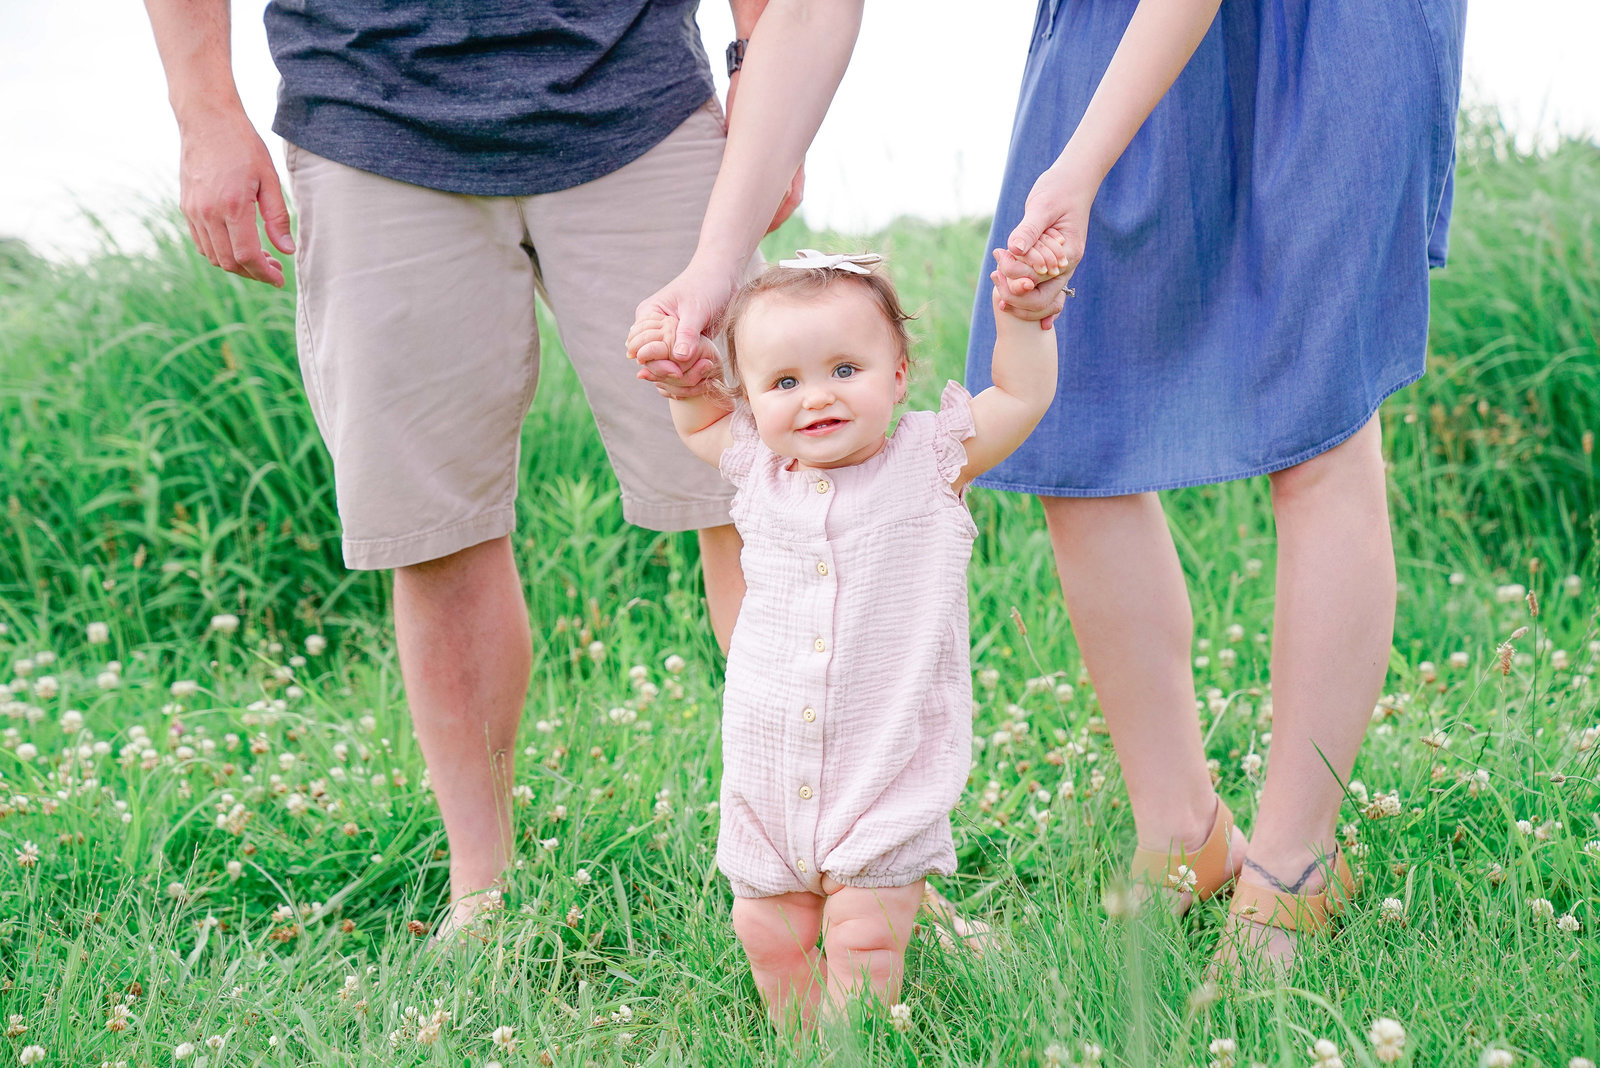 kalamazoo-family-session-outfits-9